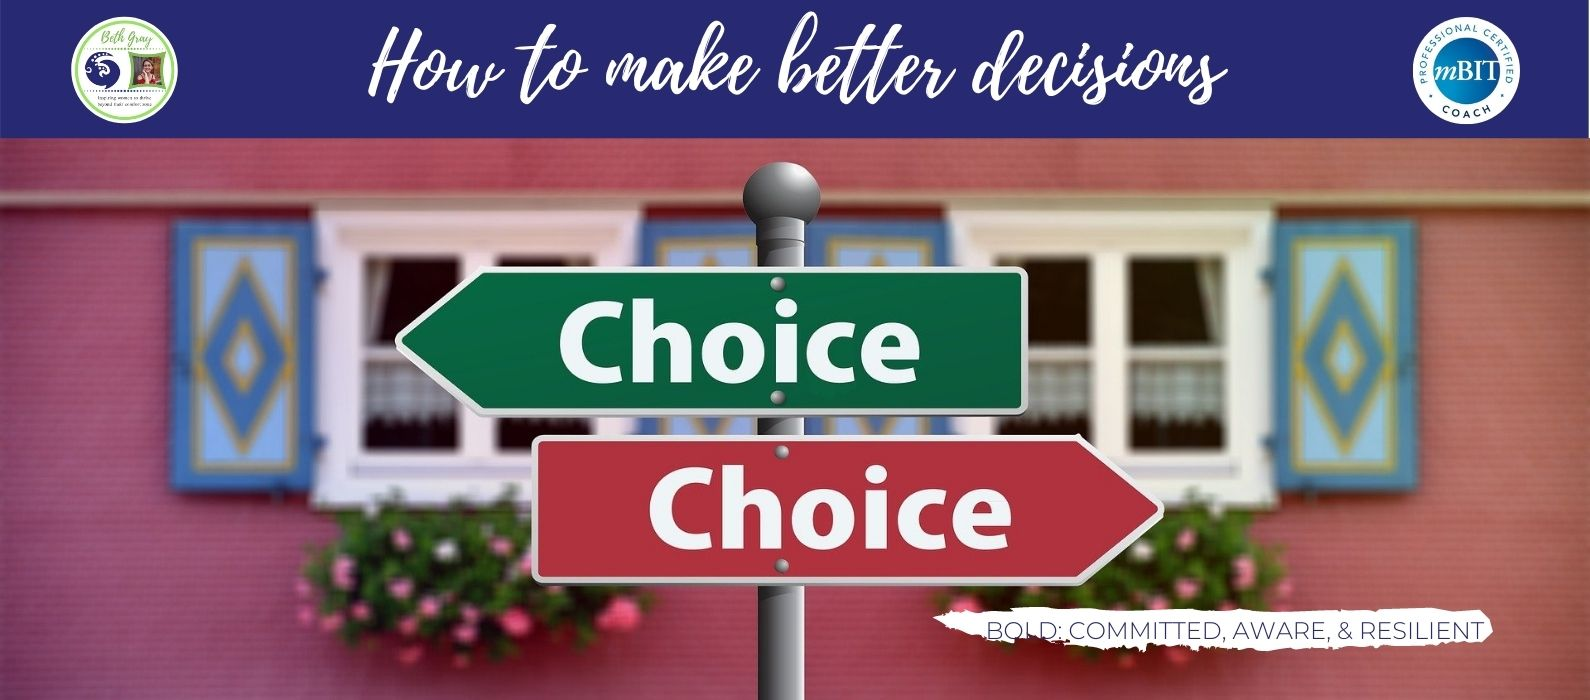 make better decisions, the art of great decision making, alignment, challenges of making a good decision, problem-solving, decision-making, expectations, should, priorities, compassion, the heart of the matter, values, passions, vision, mission, vision board, wants and desires, hopes and dreams, feelings, compassion, creativity, brainstorming, mind-mapping, unleash your creativity, think outside the box, guidance, support, mentoring, catastrophize, awfulize, safety and security, emotional needs, financial growth, professional development, replace expectations with compassion, identity